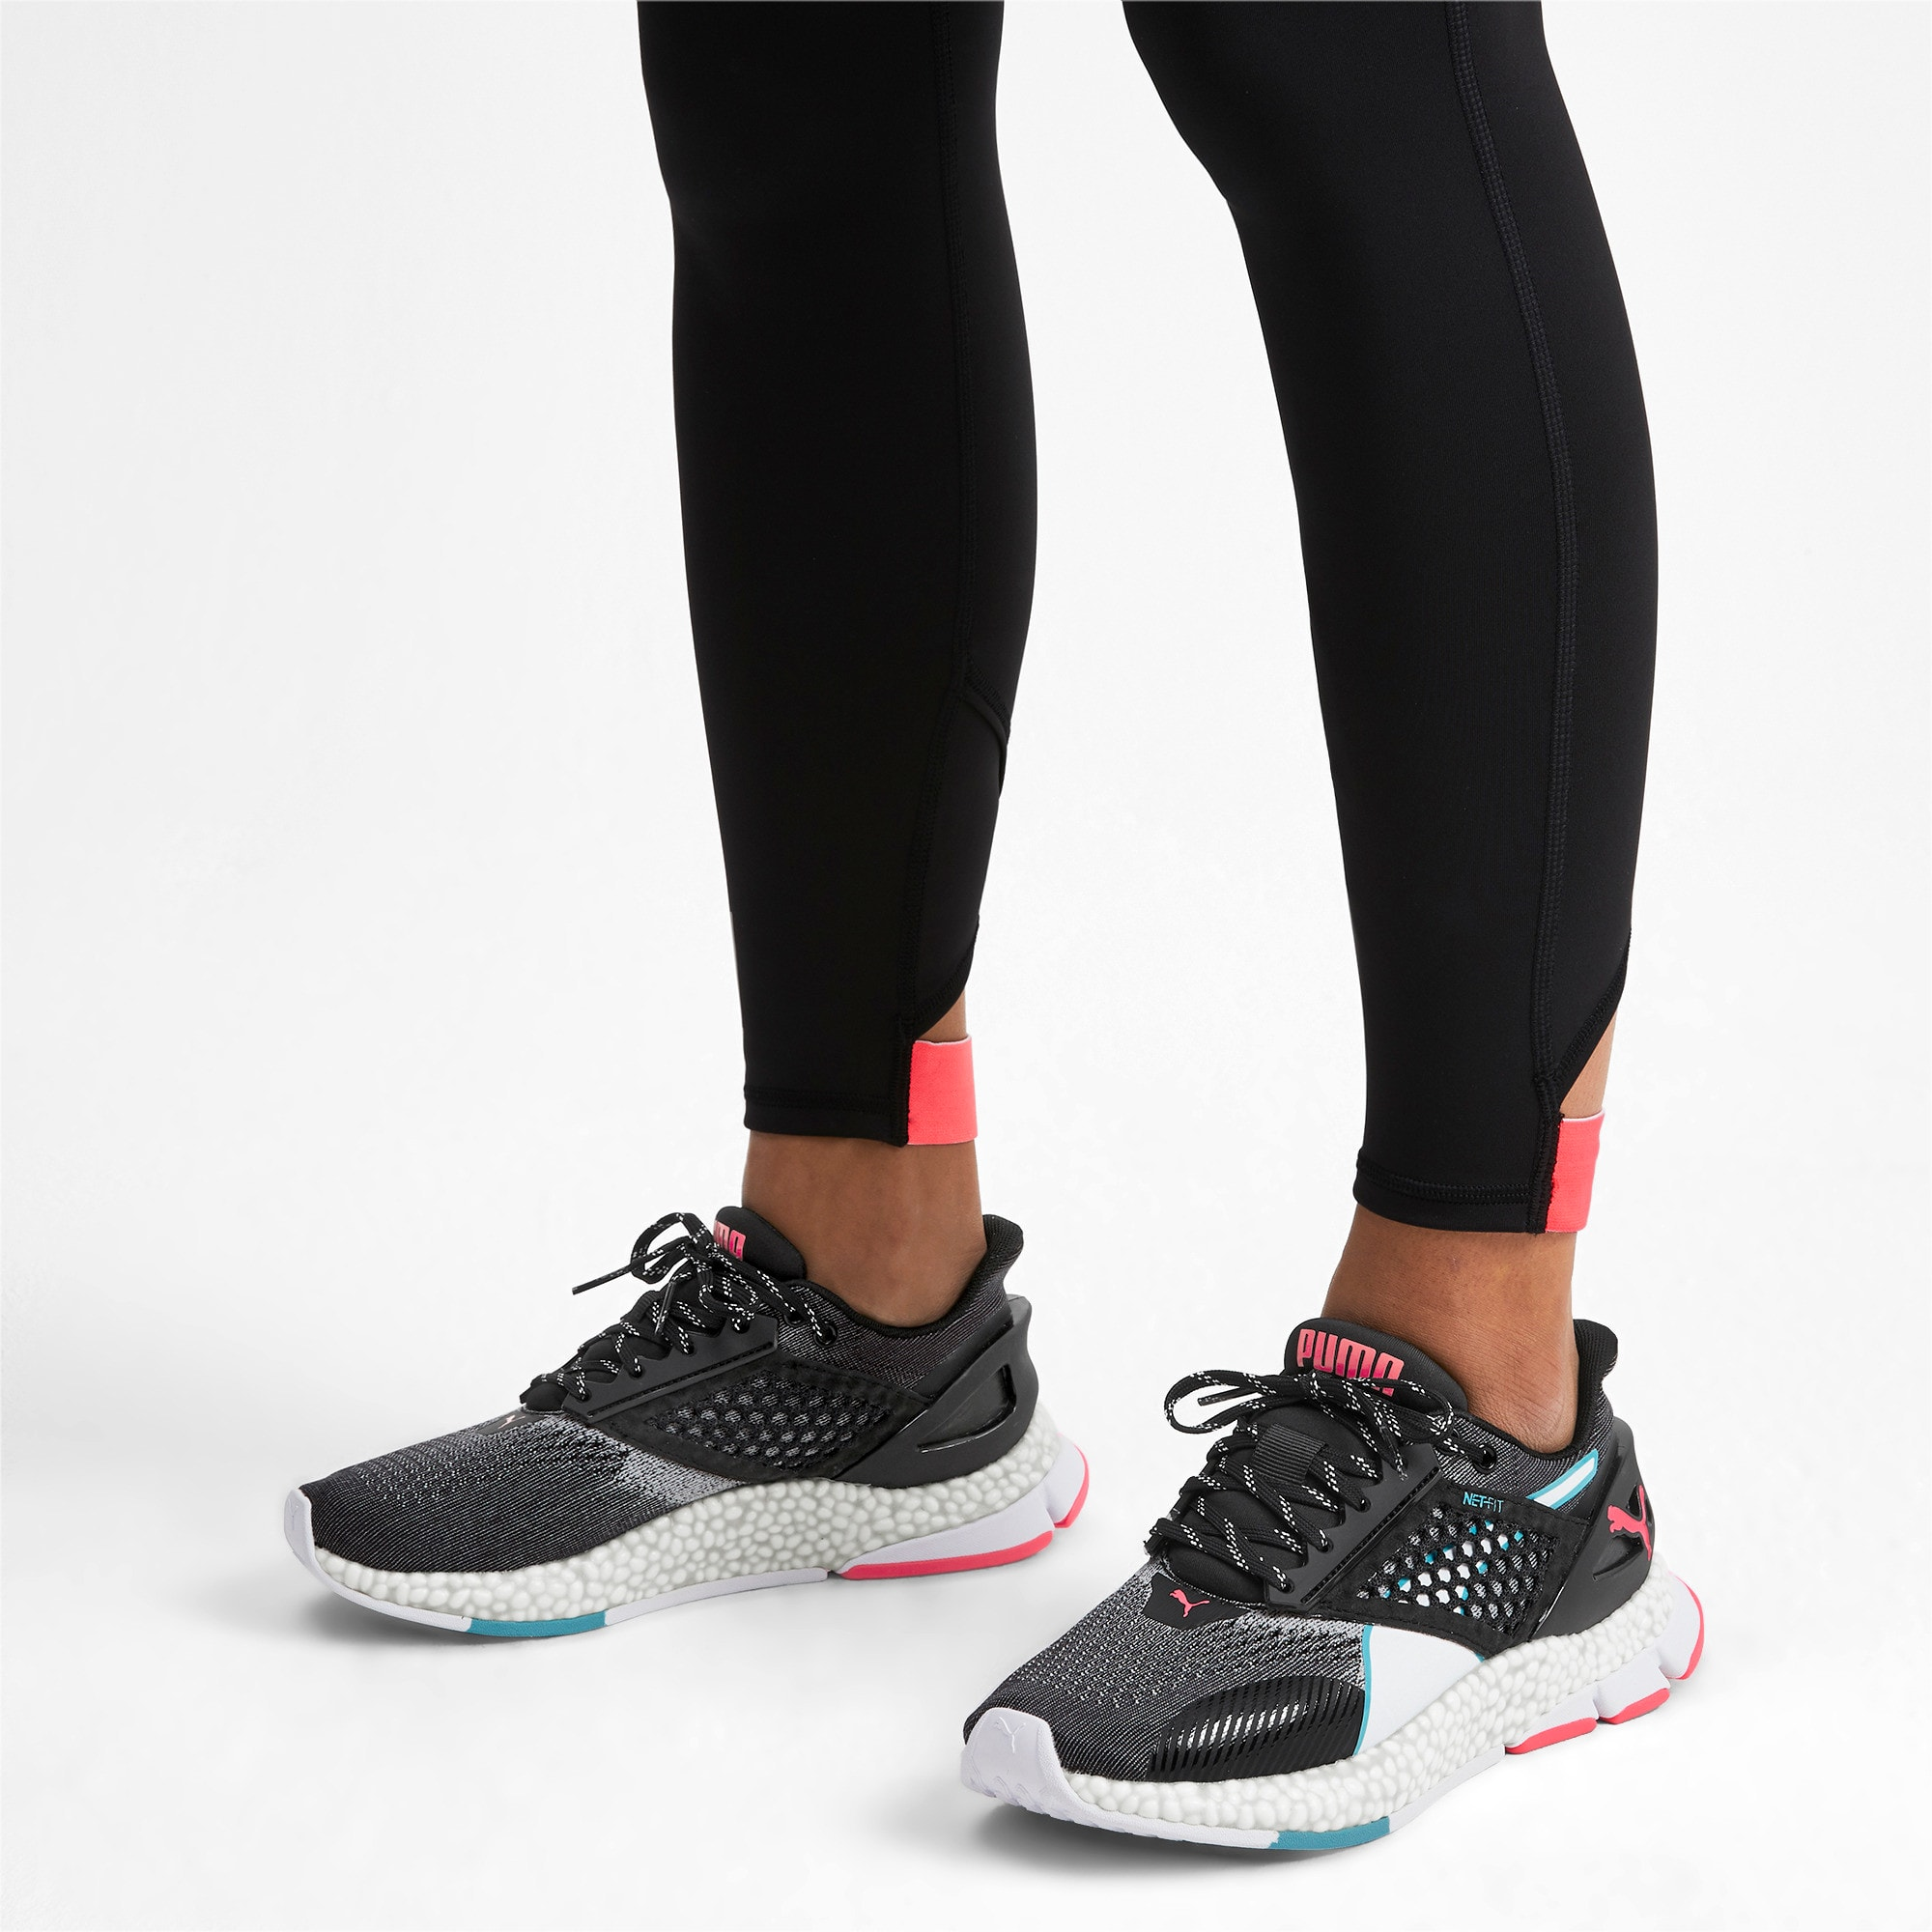 Thumbnail 2 of HYBRID NETFIT Astro Women's Running Shoes, Puma Black-Pink Alert, medium